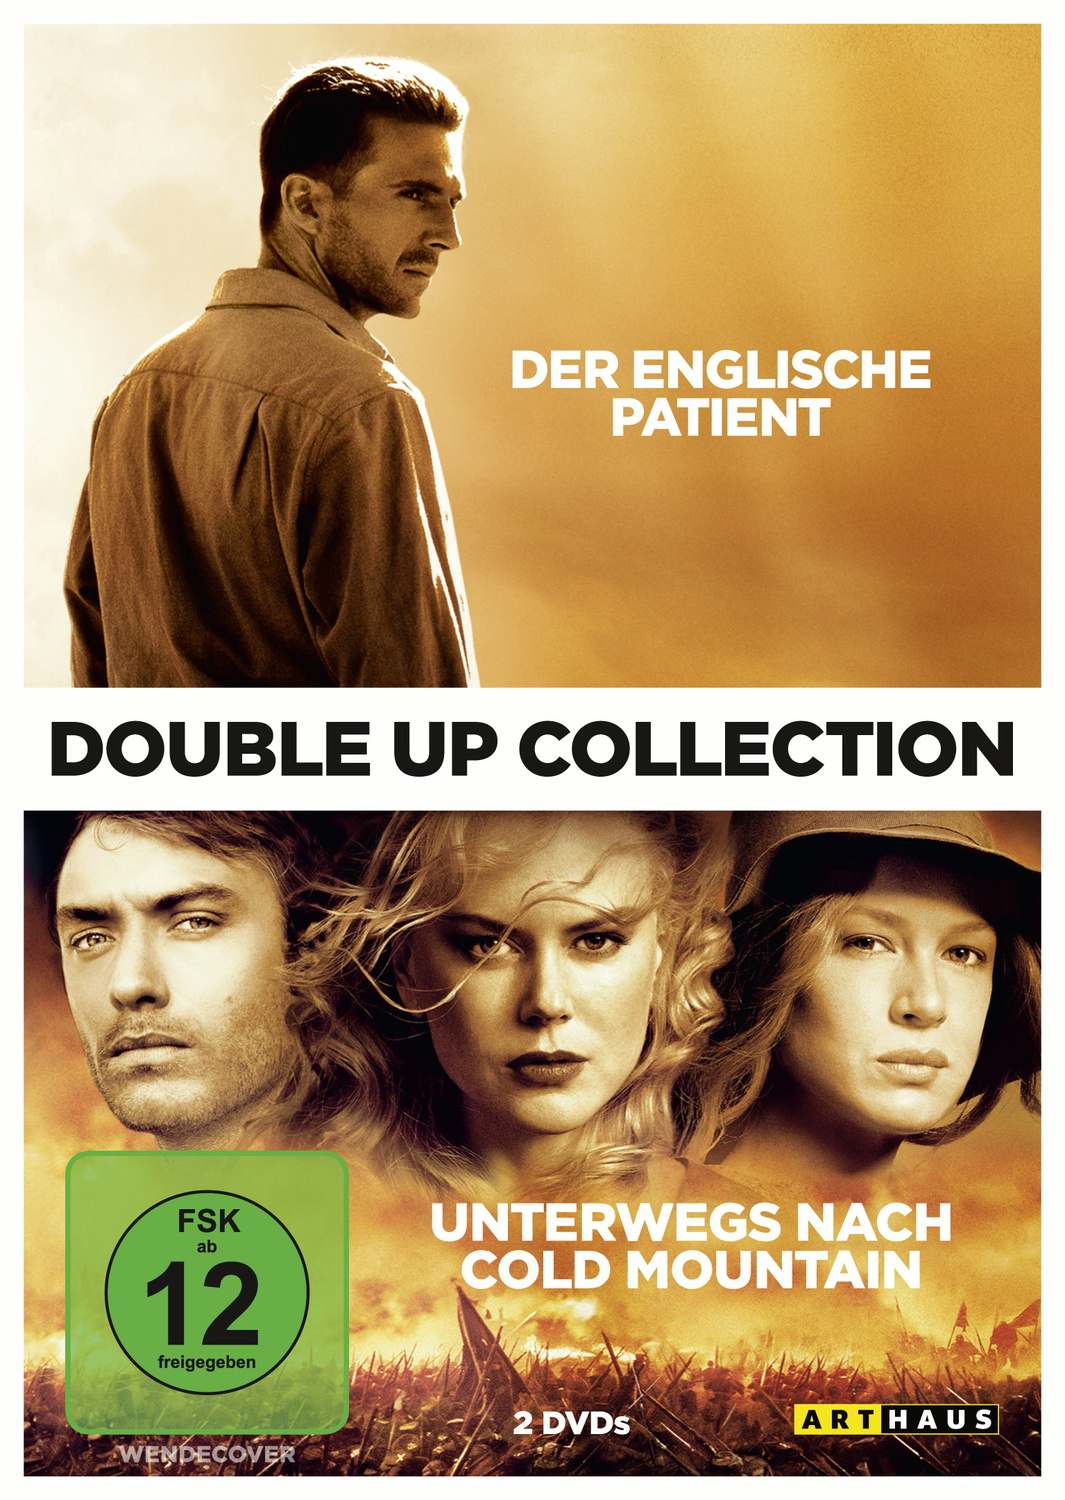 Double Up Collection: Der Englische Patient / Unterwegs nach Cold Mountain [2 DVDs]